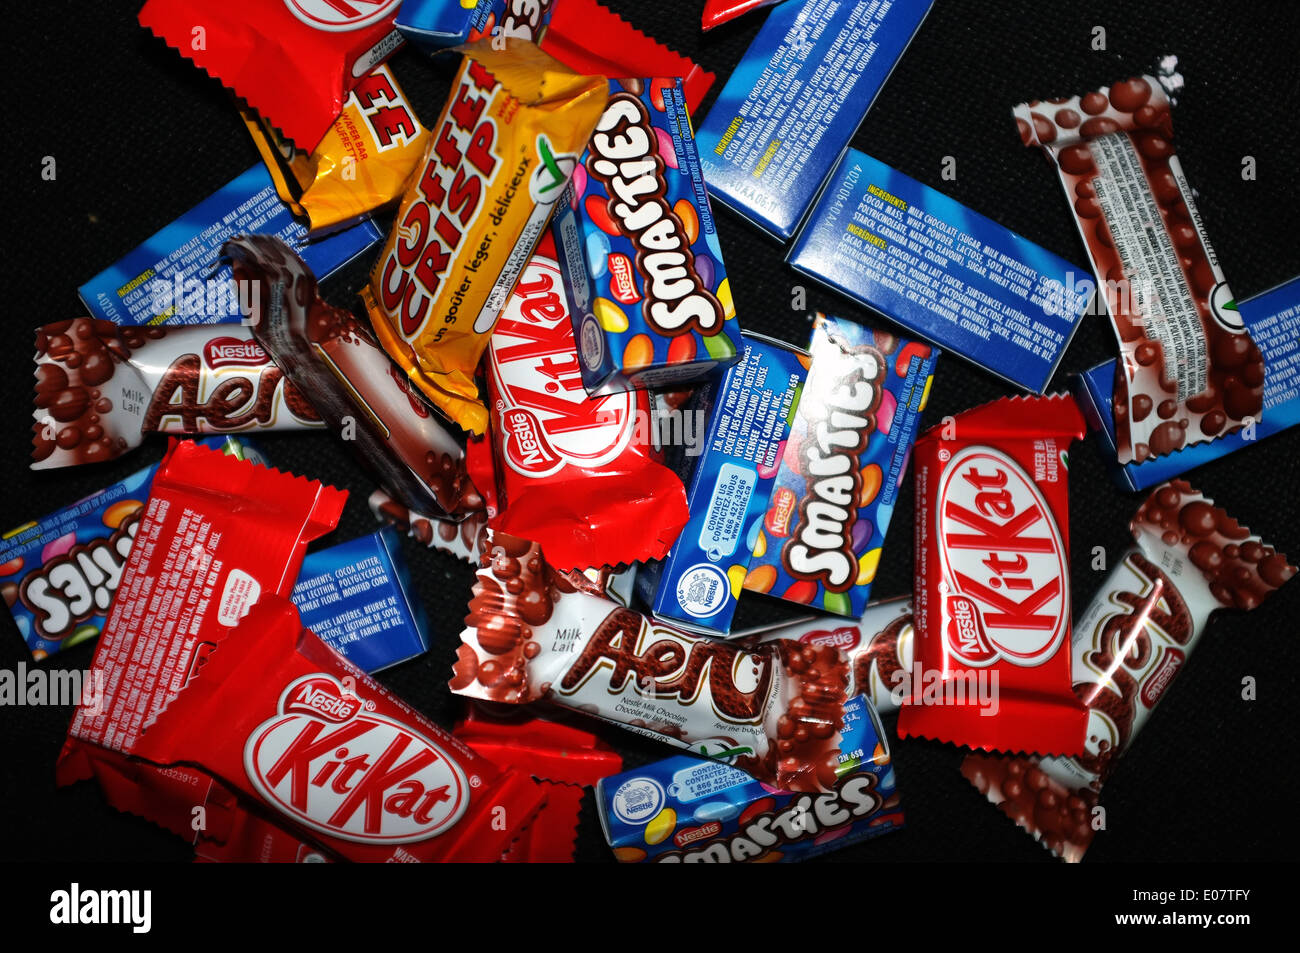 A pile of Aero, Coffee Crisp, Kit Kat and Smarties chocolates photographed against a black background. - Stock Image